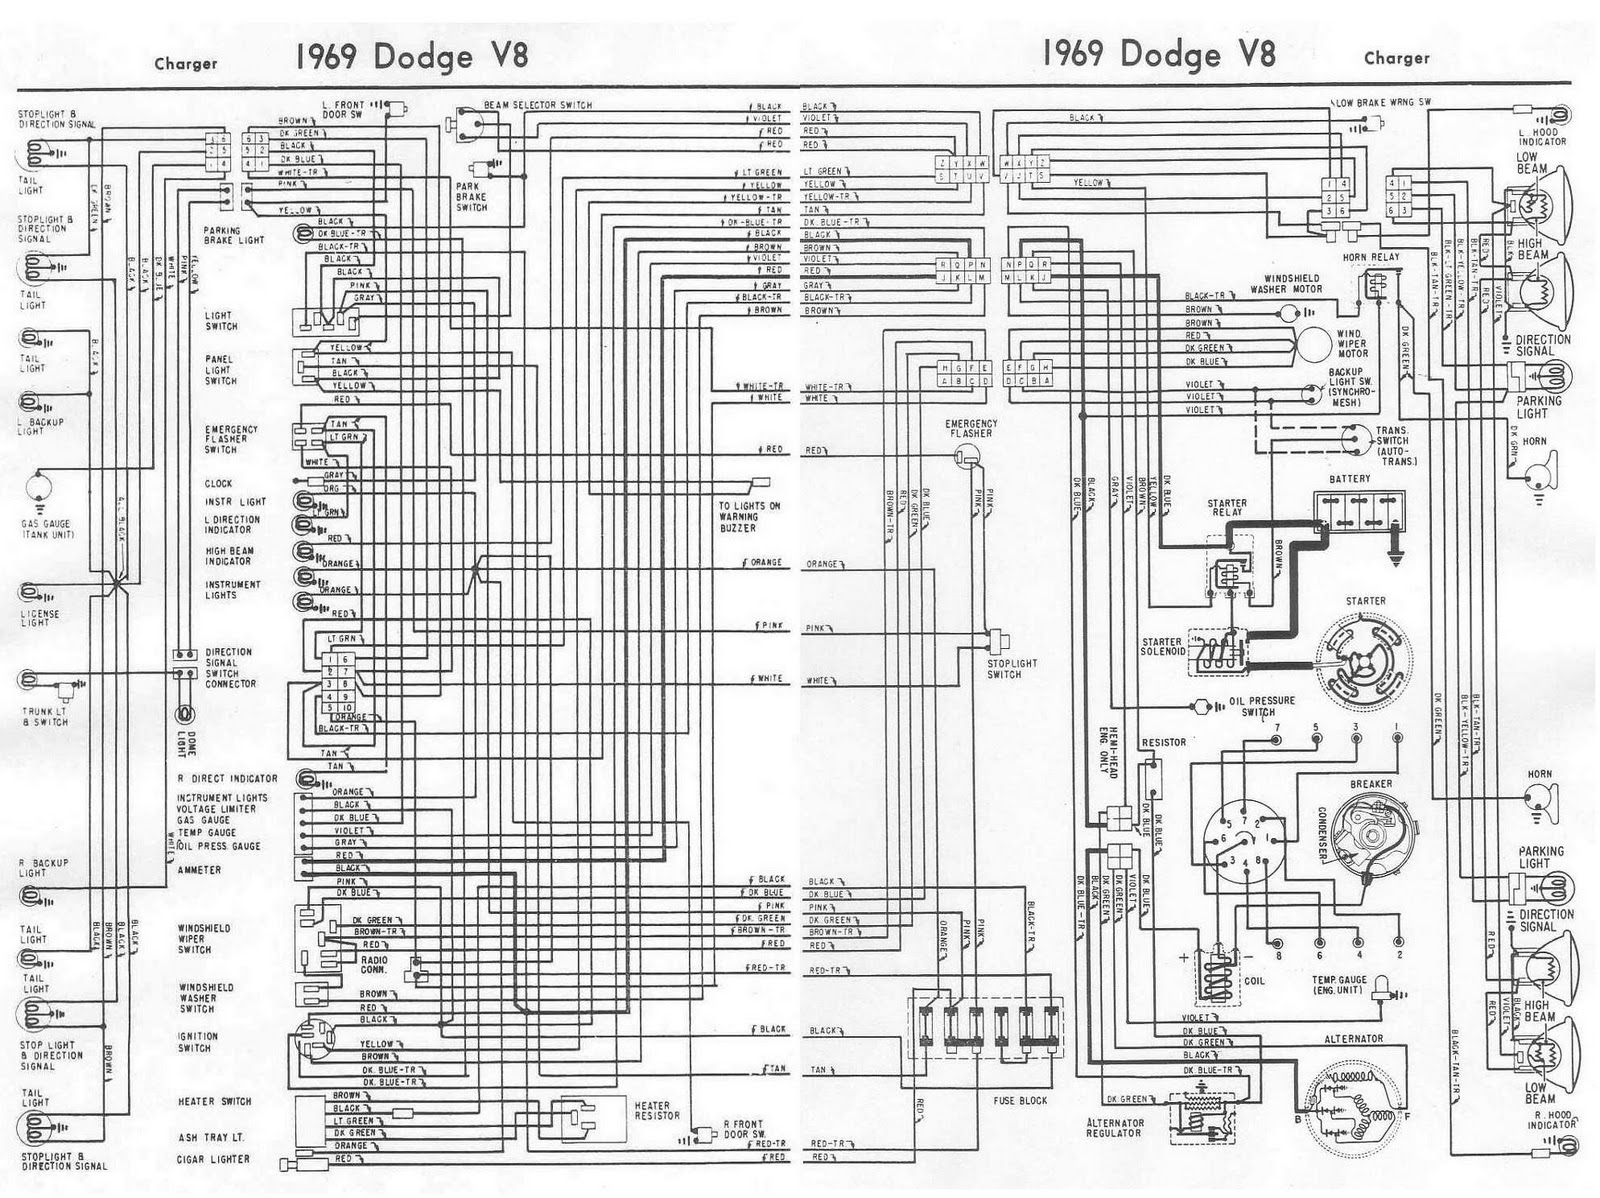 Diagram 1934 Dodge Wiring Diagram Schematic Full Version Hd Quality Diagram Schematic Diagramsmaum Caditwergi It